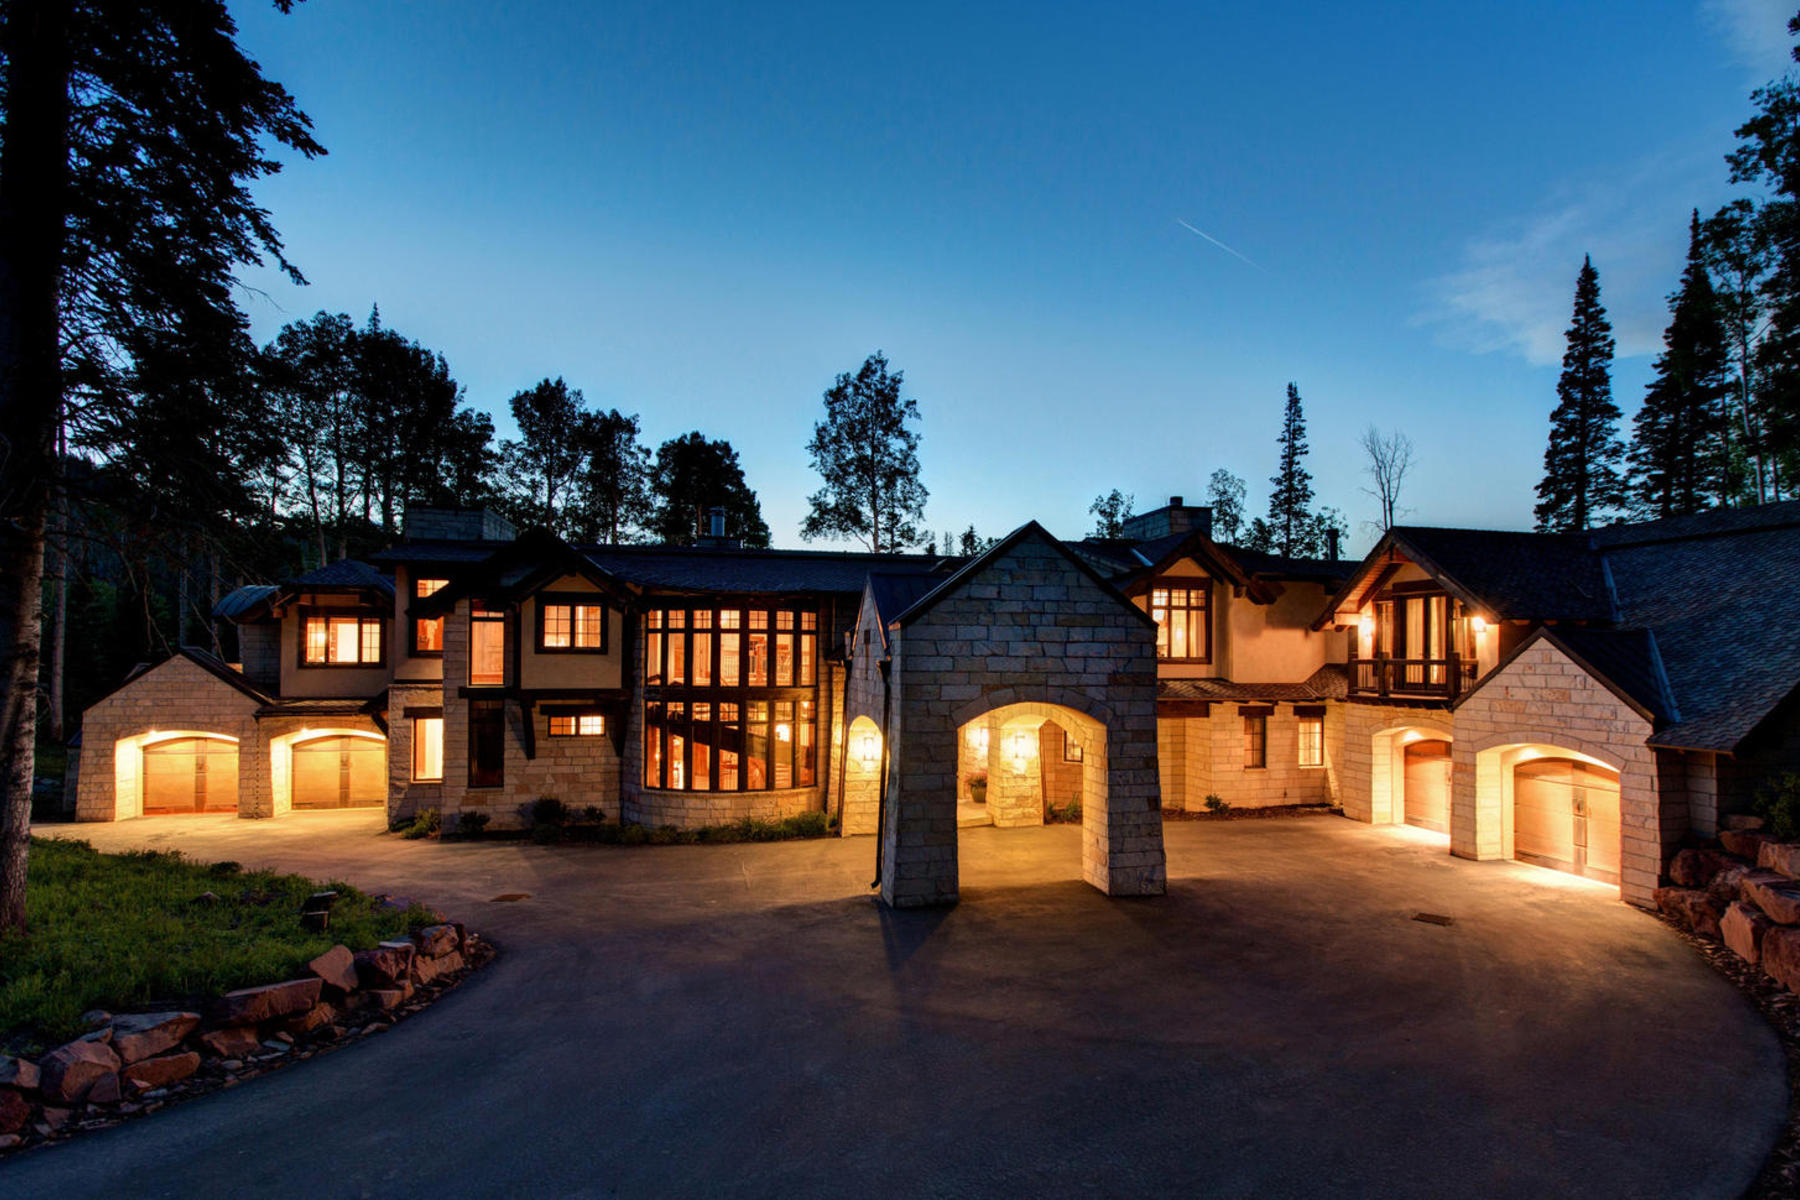 独户住宅 为 销售 在 Unique Privacy and Seclusion with Unparalleled Ski Access 98 White Pine Canyon Rd Park City, 犹他州 84098 美国